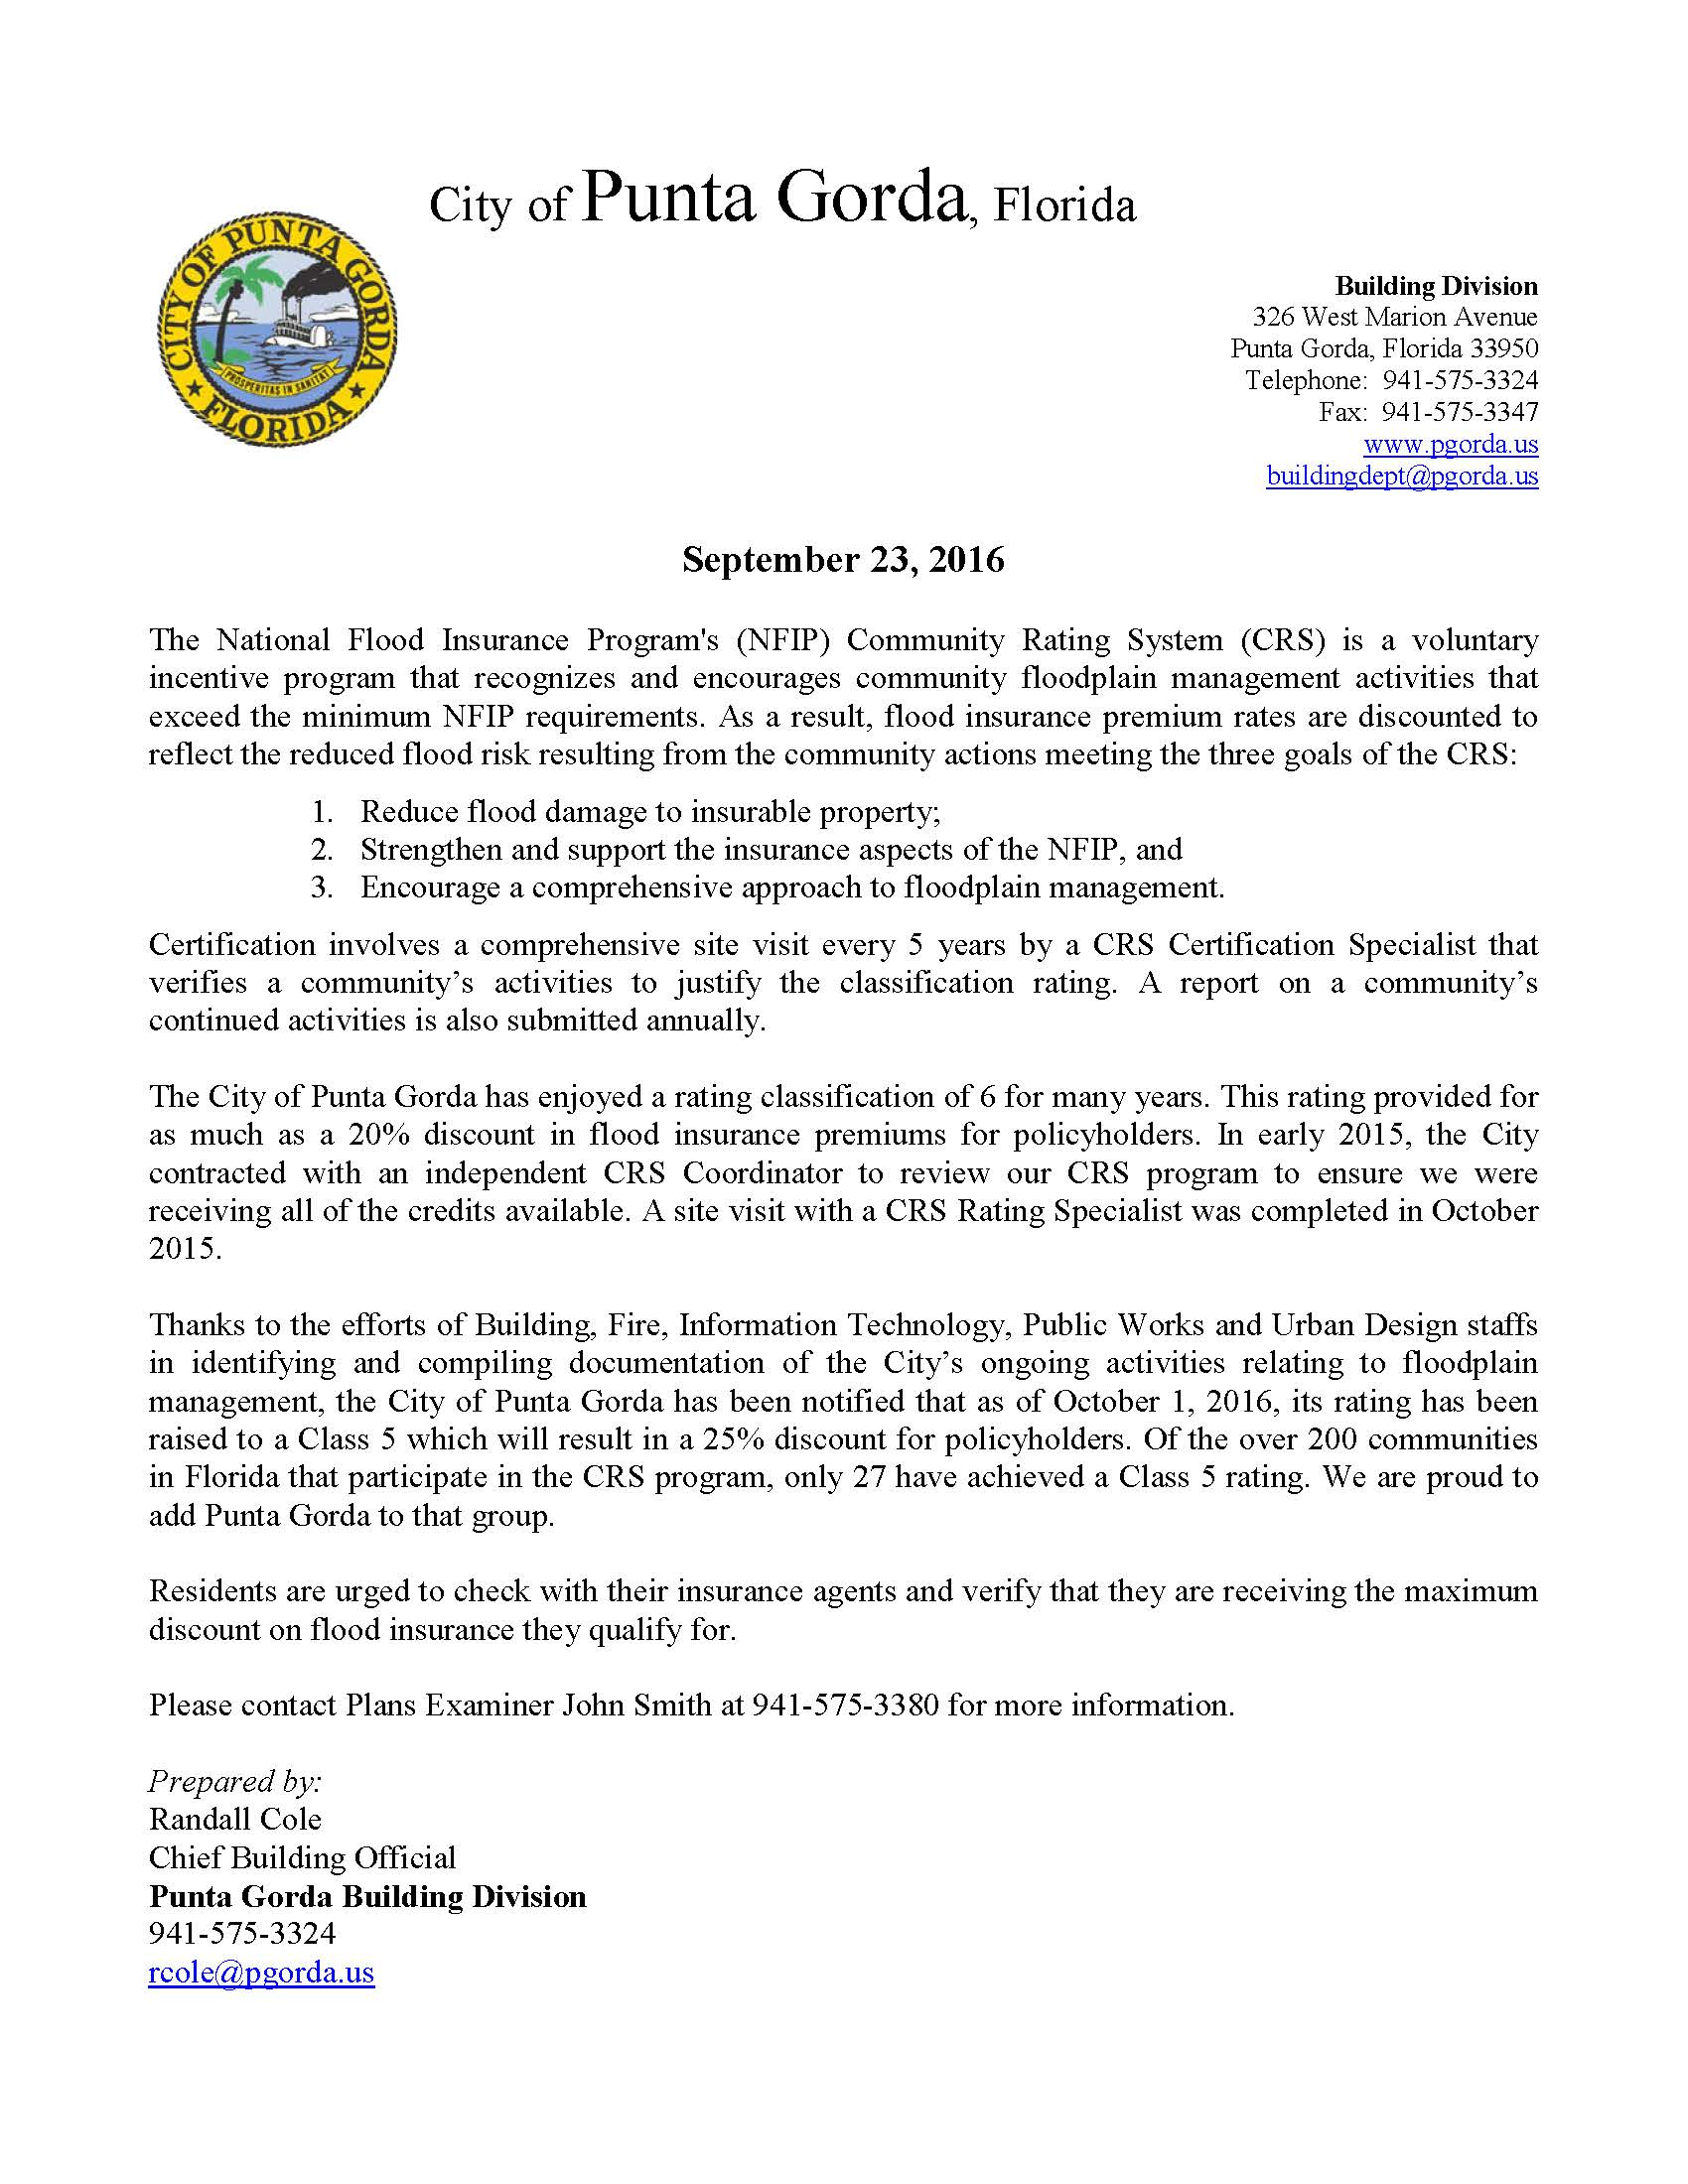 City Achieves Class 5 Community Rating Under The National Flood